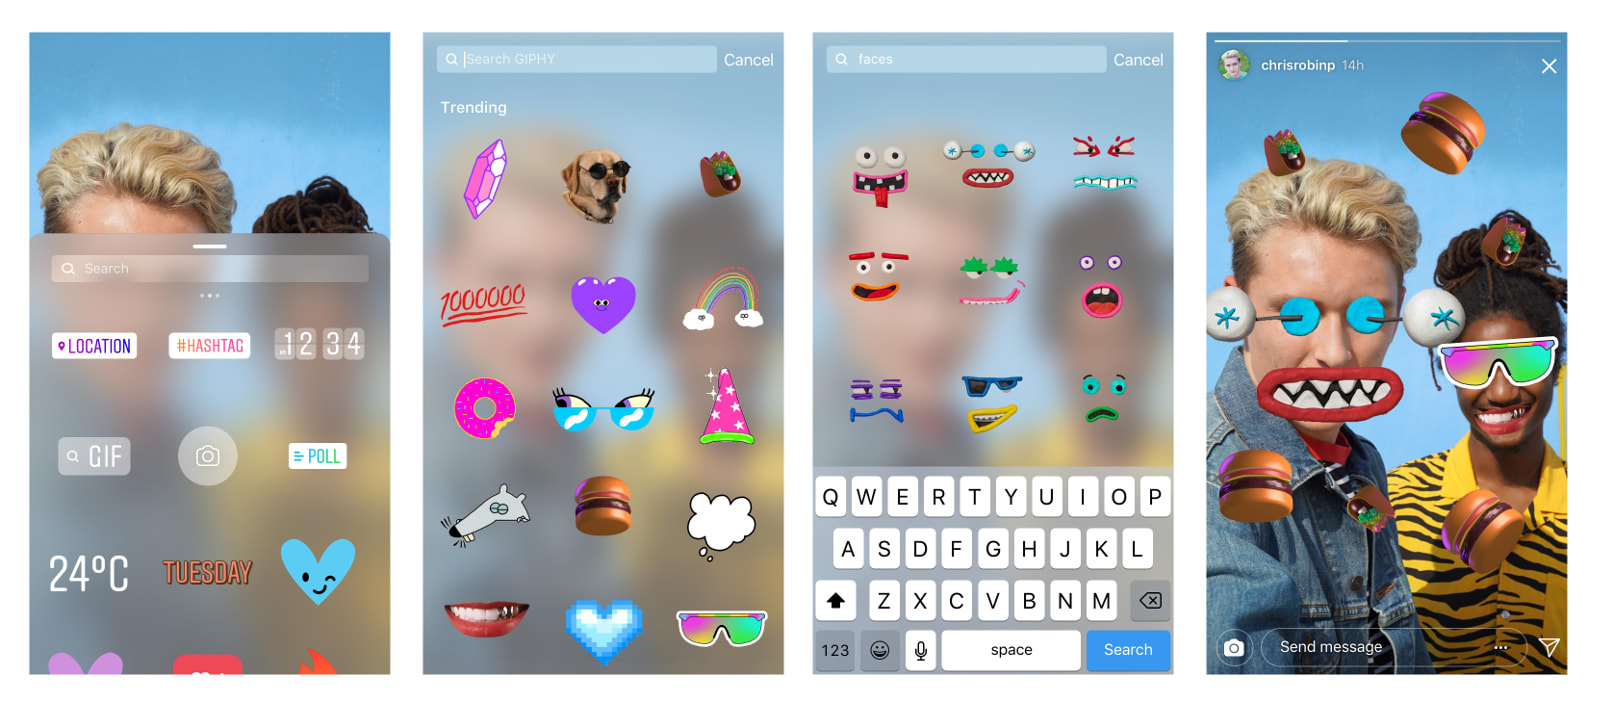 Instagram Stories Harness The Power Of Giphy For Animated Stickers